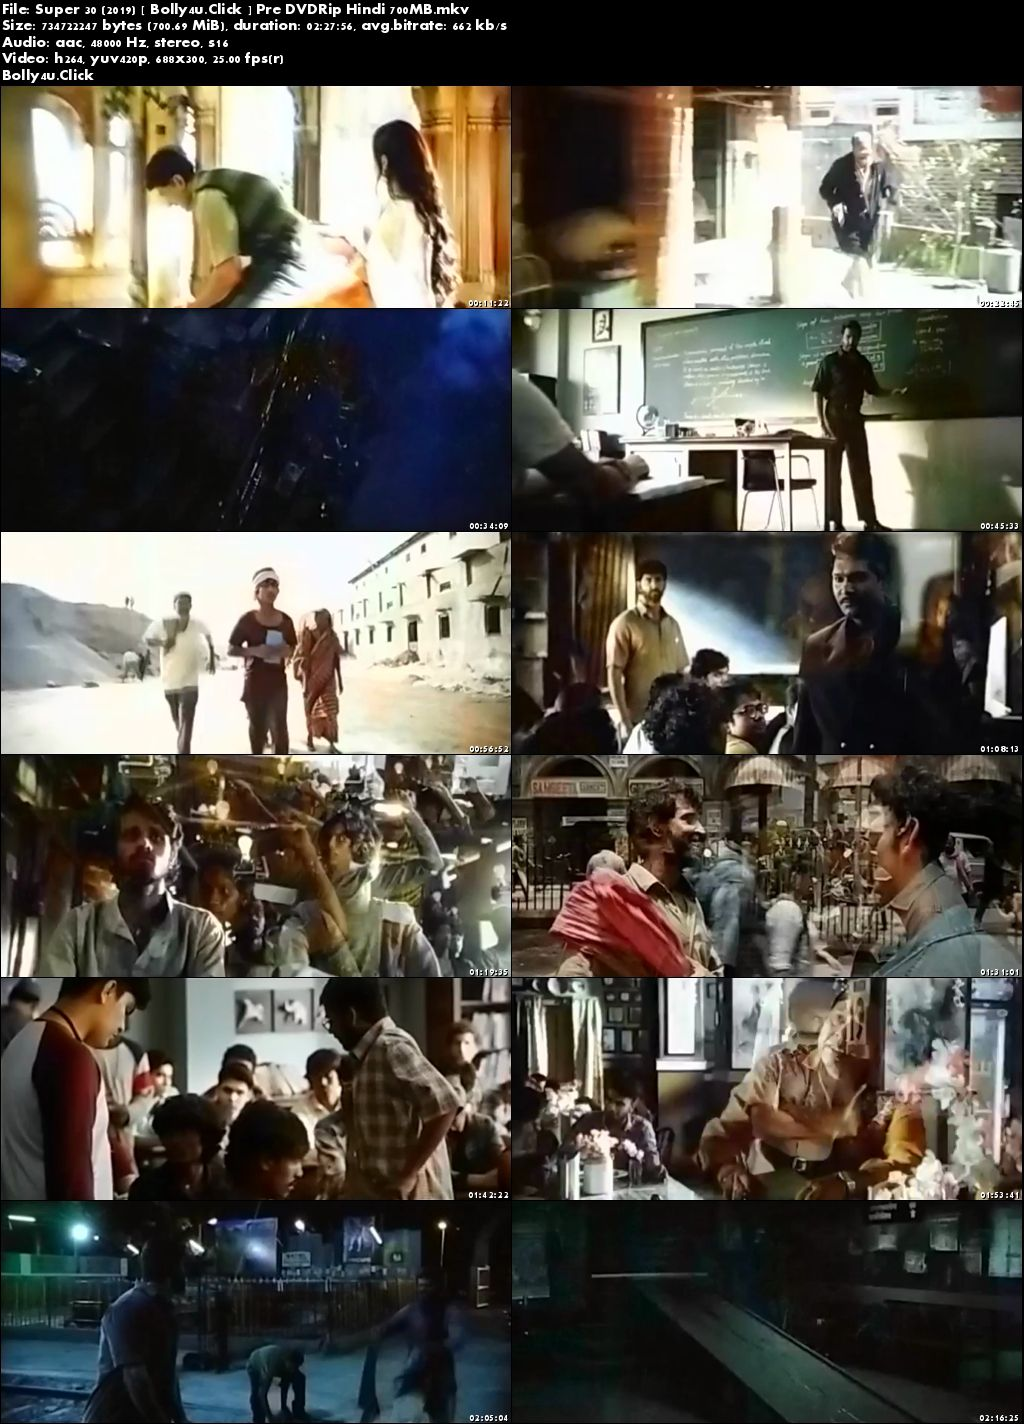 Super 30 (2019) Pre DVDRip 700Mb Full Hindi Movie Download x264